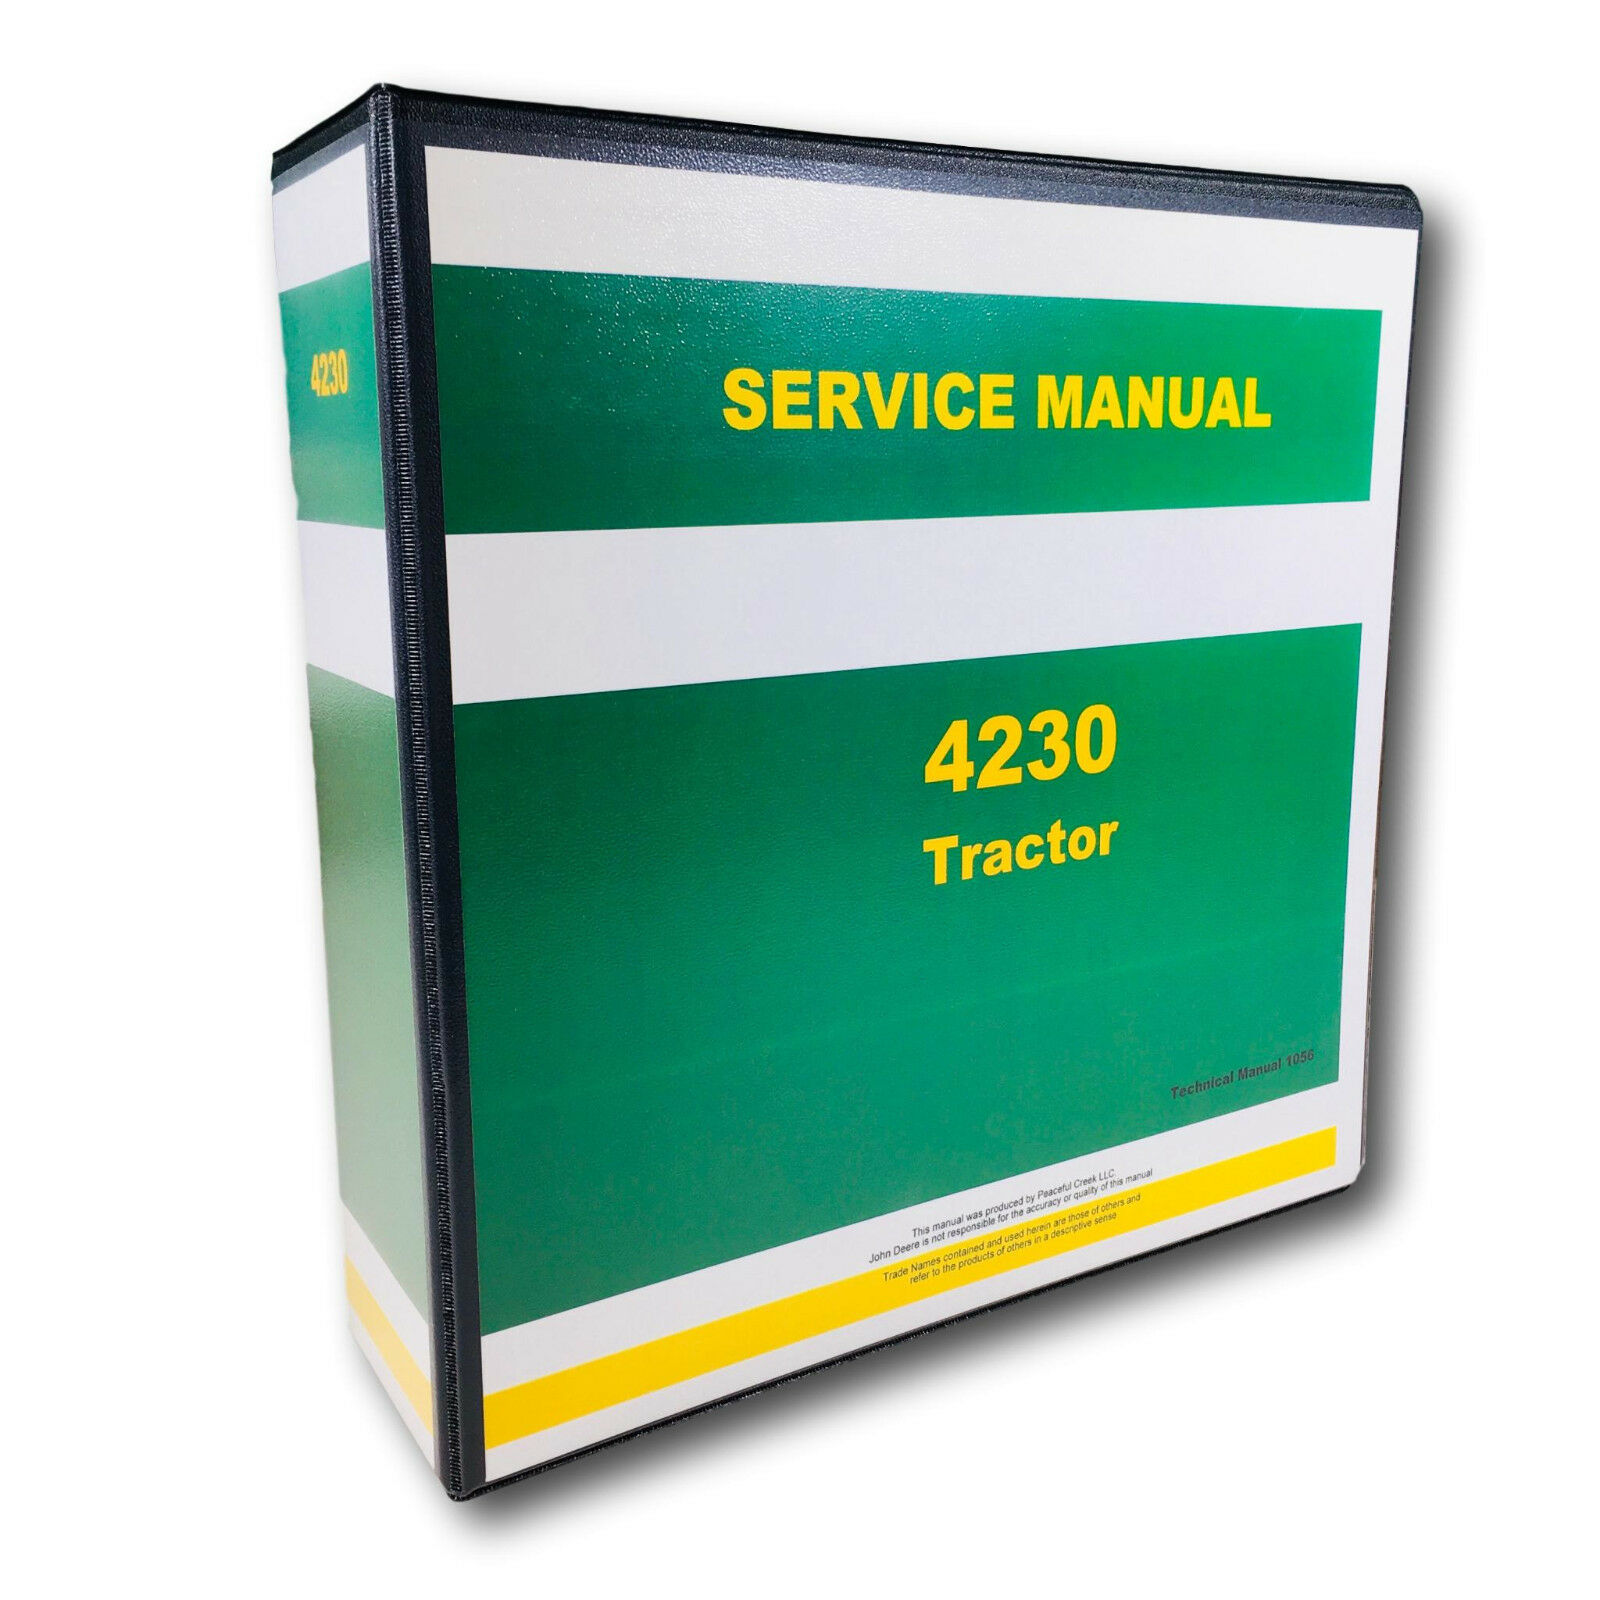 Details about SERVICE MANUAL FOR JOHN DEERE 4230 TRACTOR TECHNICAL on john deere 4230 electrical system, john deere 4230 battery, john deere 4230 seats, john deere 4230 manual, john deere 320 wiring-diagram, john deere 155c wiring-diagram, john deere 145 wiring-diagram, john deere 4230 engine, john deere 455 wiring-diagram, john deere 4230 cylinder head, john deere 4010 wiring-diagram, john deere 4230 fuel system, john deere 4430 wiring-diagram, john deere z225 wiring-diagram, john deere 4230 specifications, john deere 4230 alternator, john deere m wiring-diagram, john deere 445 wiring-diagram, john deere 4230 starter solenoid, john deere 4230 exhaust,